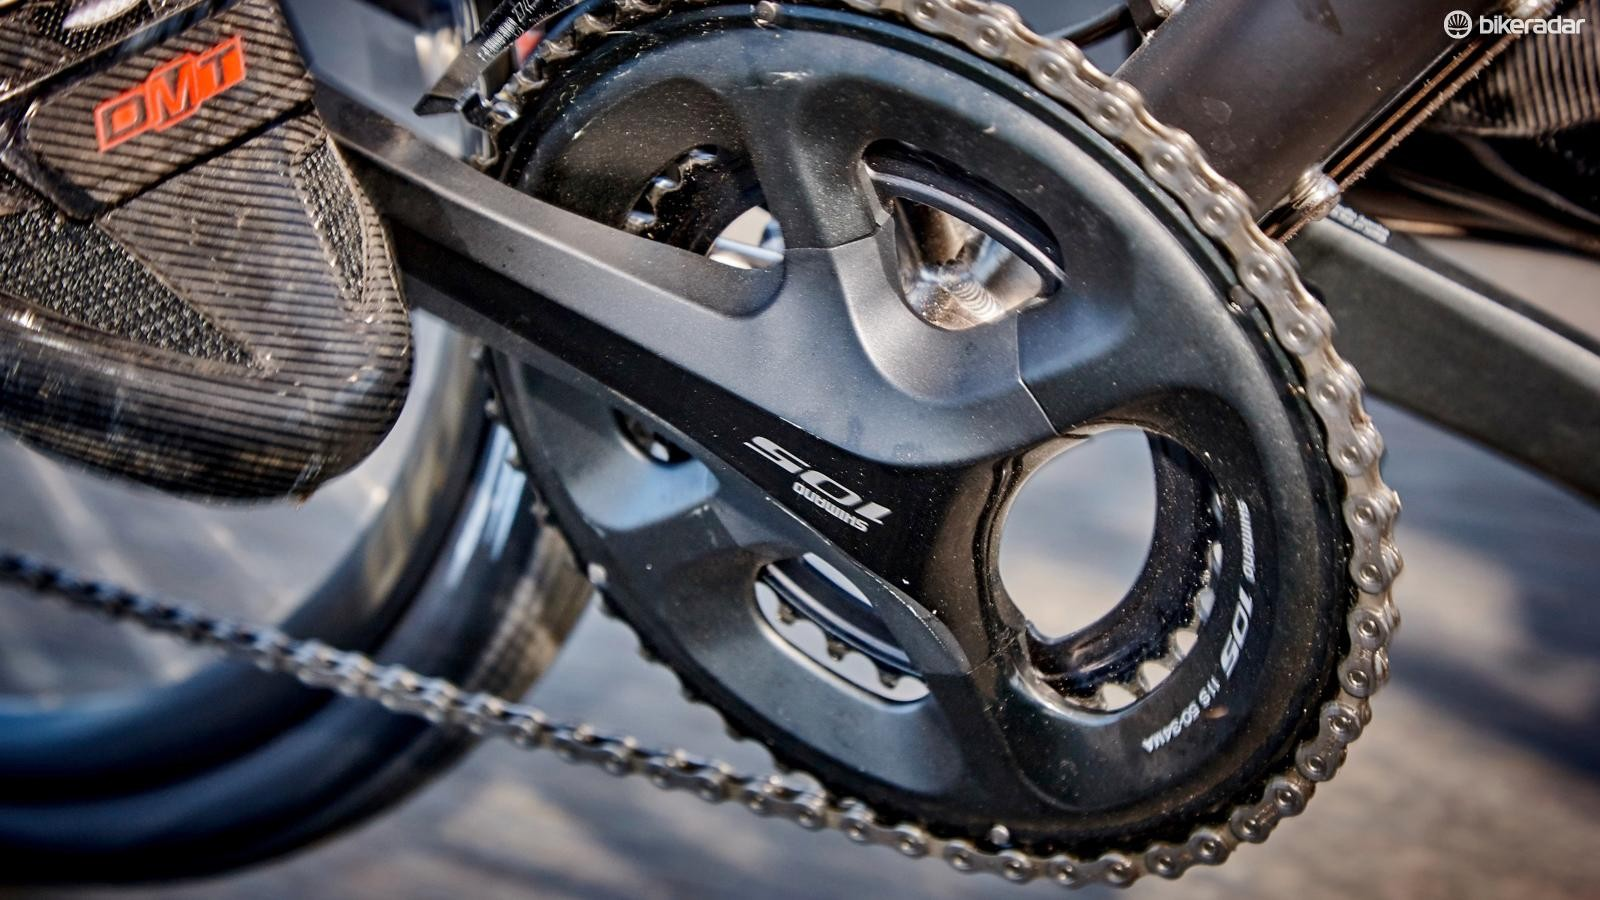 The compact 50/34 crankset is specced in black _ our experience suggests this looks ace, until you scratch it